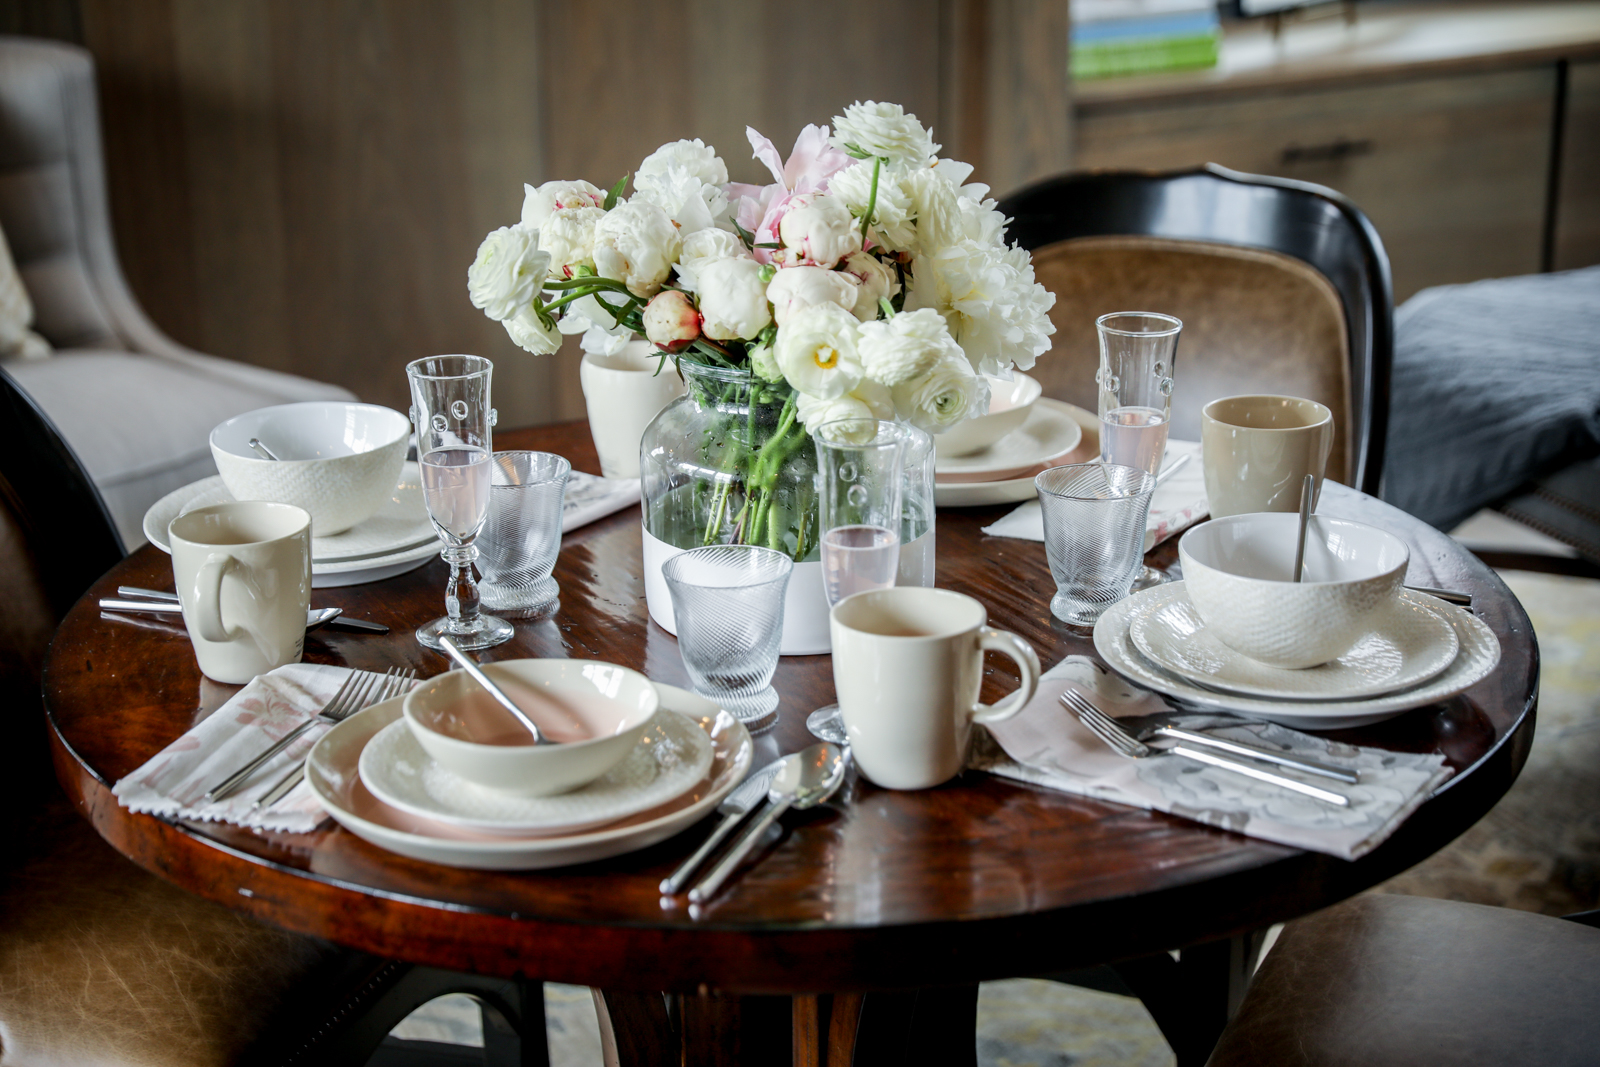 Brunch-Tablescape-White-Pink-Peonies-Rosé-Cheers.jpg